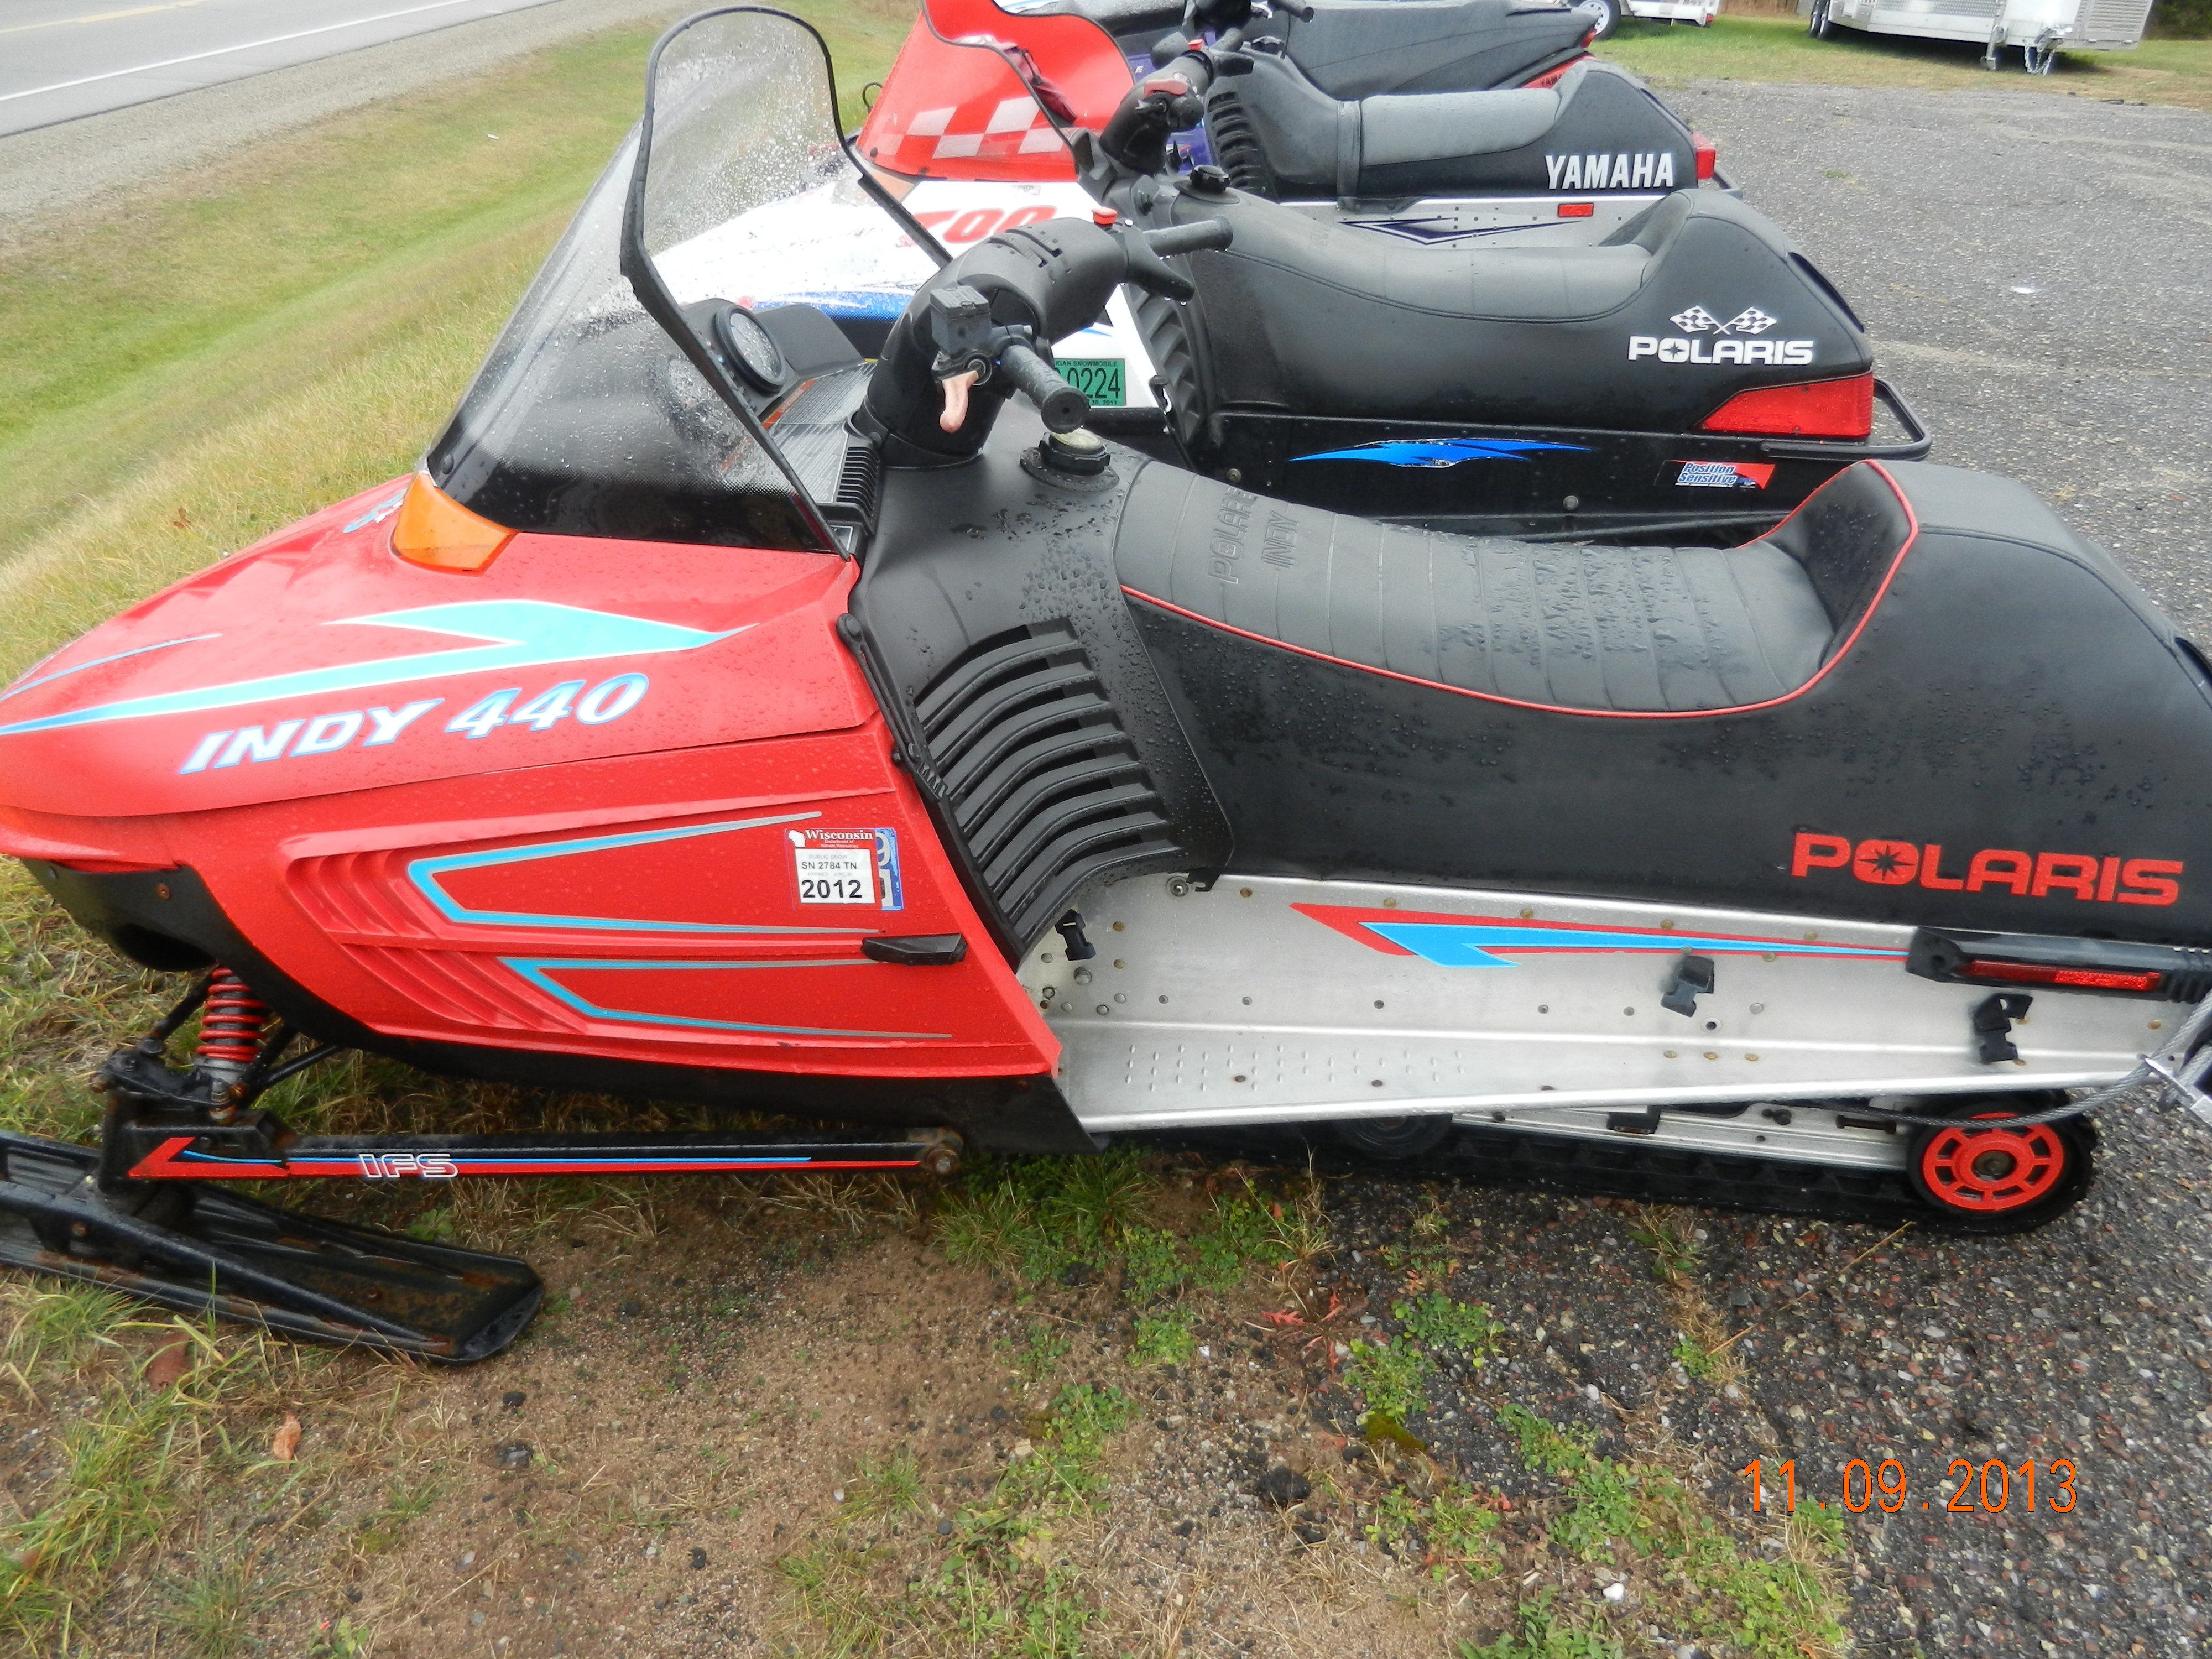 1994 Polaris Indy 440 Specs Related Keywords Suggestions 1994